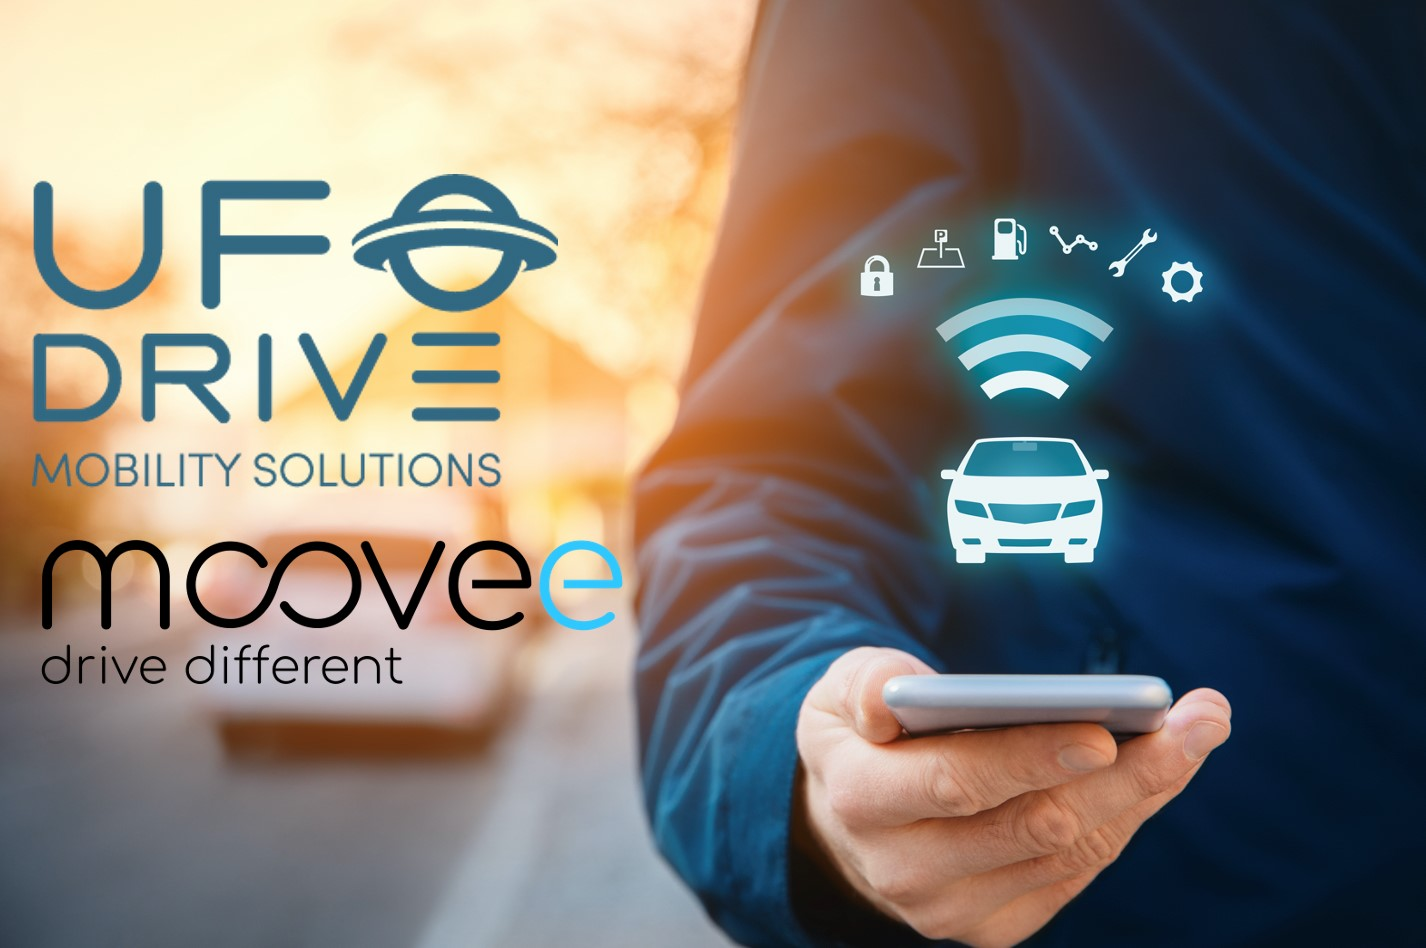 Moovee goes live with UFODRIVE's eMobility fleet management platform